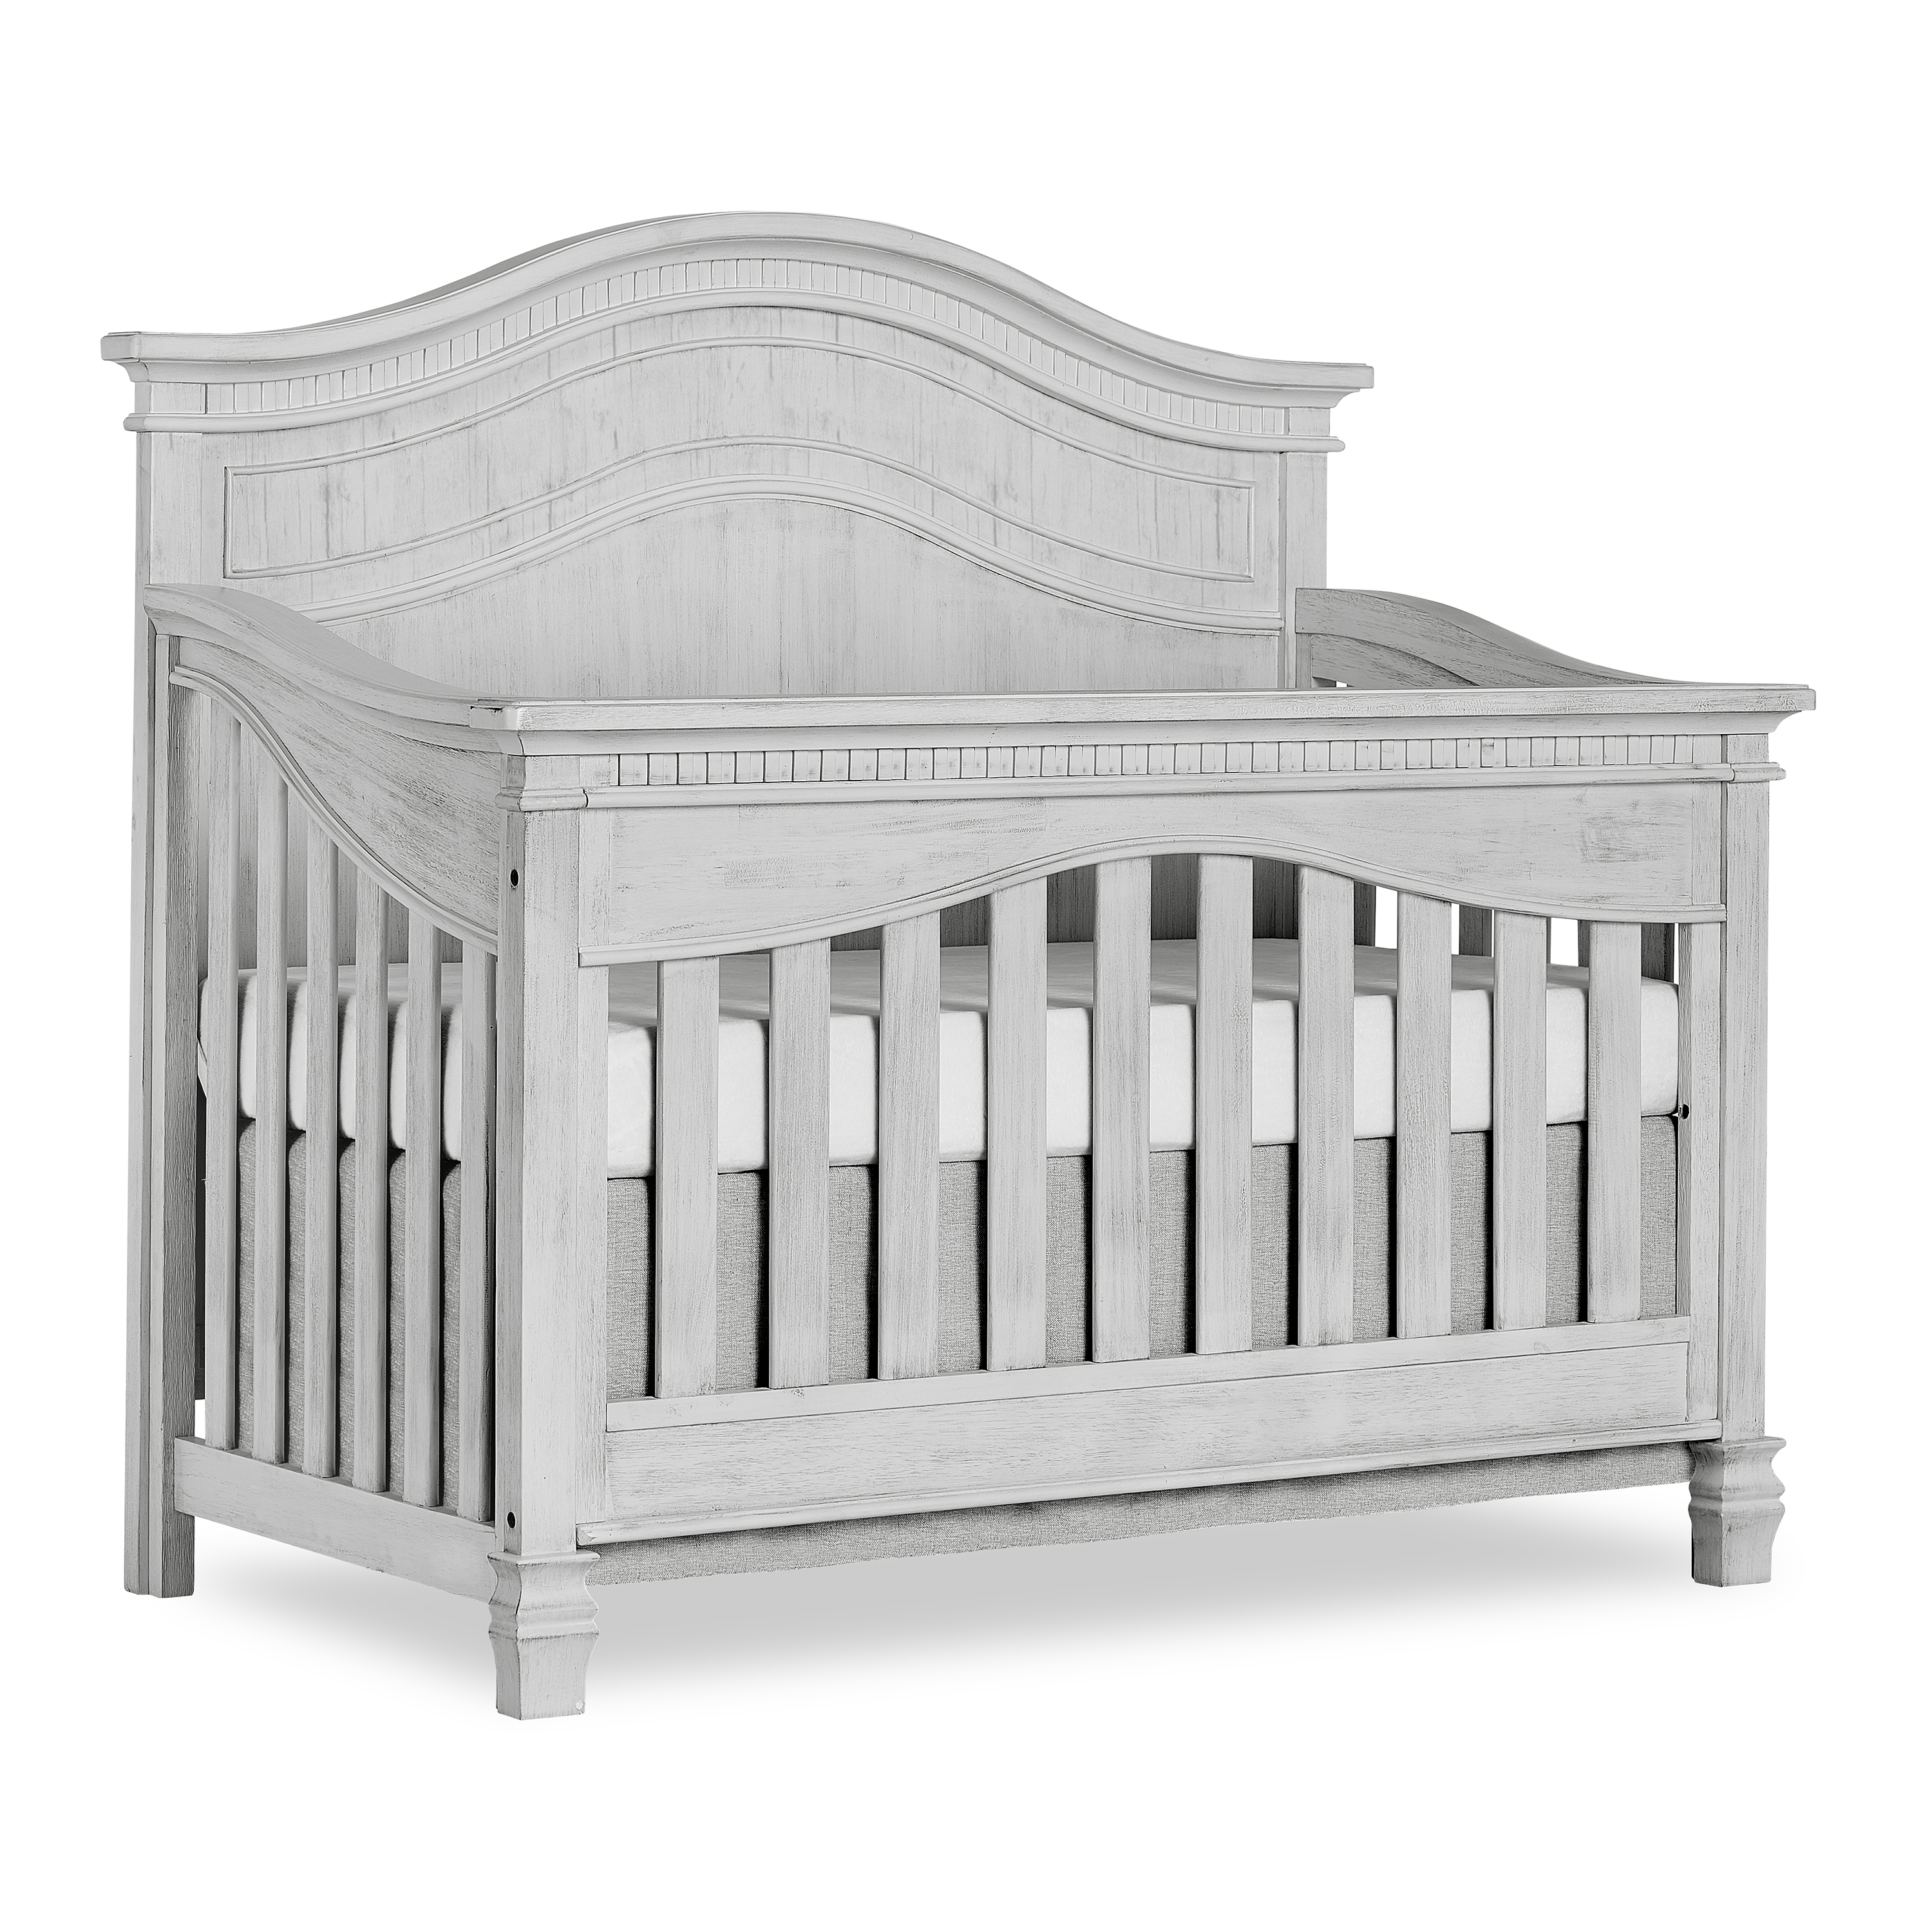 Evolur Cheyenne 5 in 1 Full Panel Convertible Crib, Antique Grey Mist by evolur